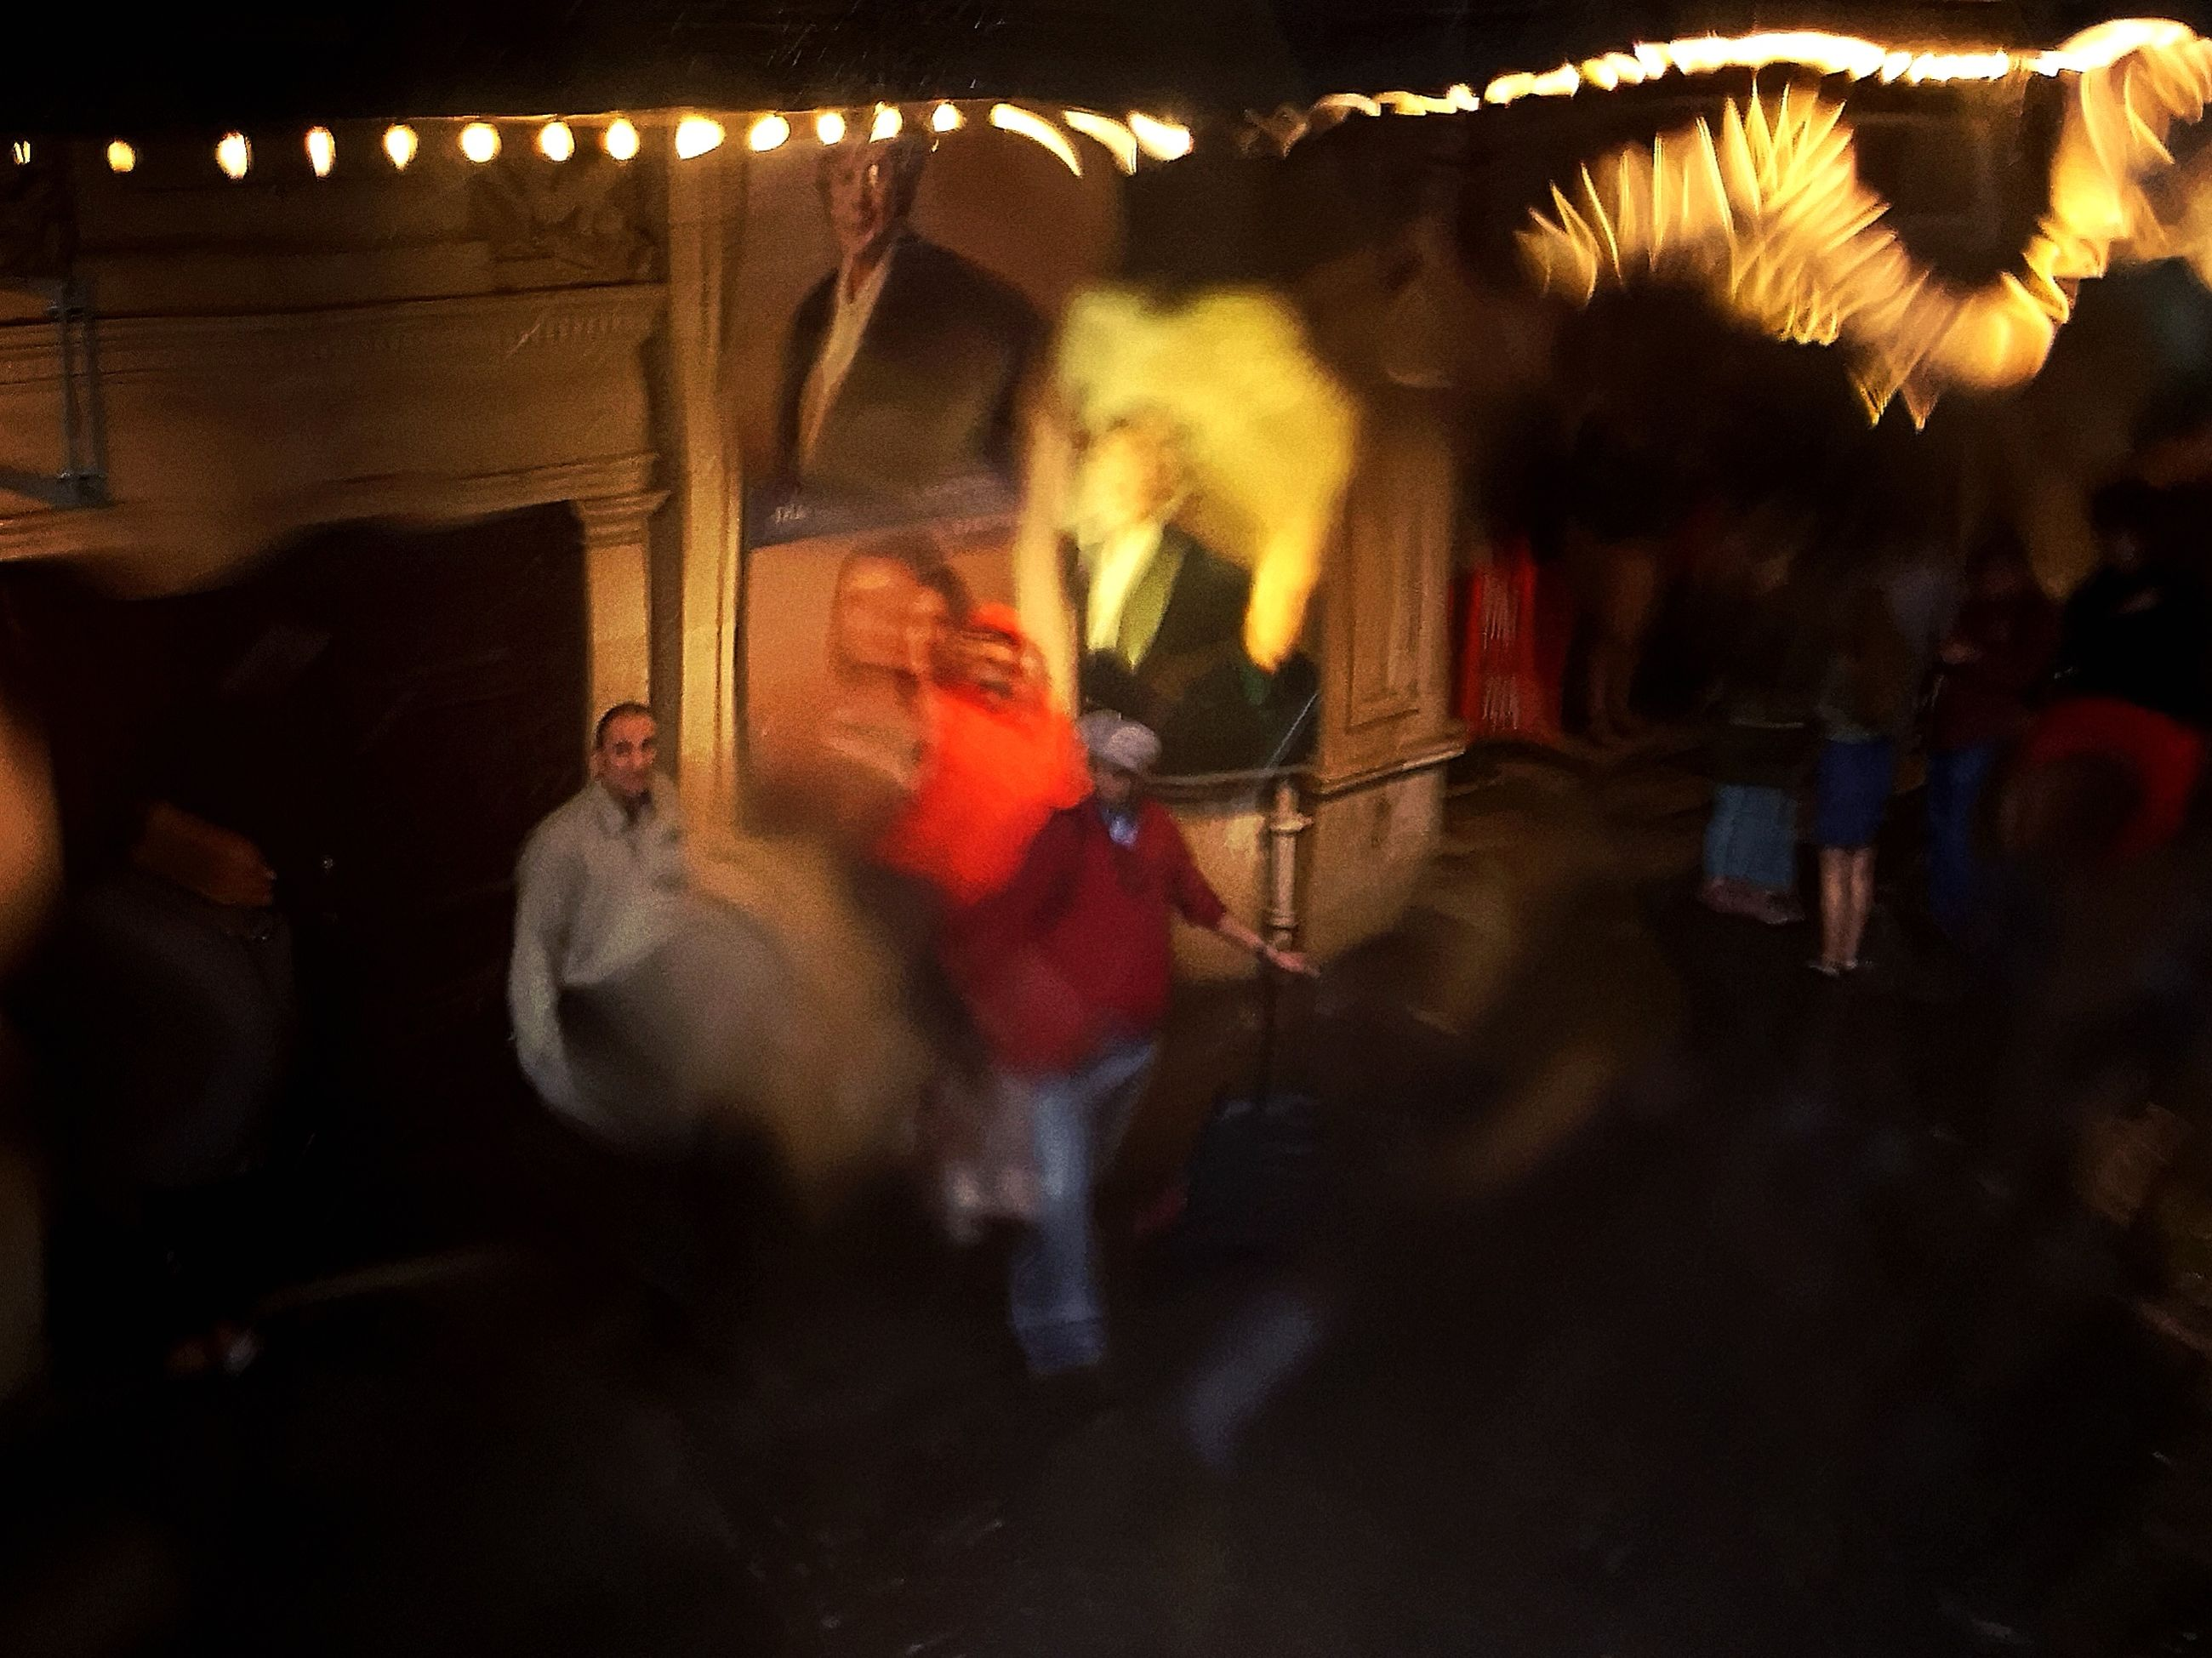 night, real people, blurred motion, arts culture and entertainment, men, motion, illuminated, people, incidental people, street, performance, event, musical instrument, group of people, celebration, unrecognizable person, music, adult, musician